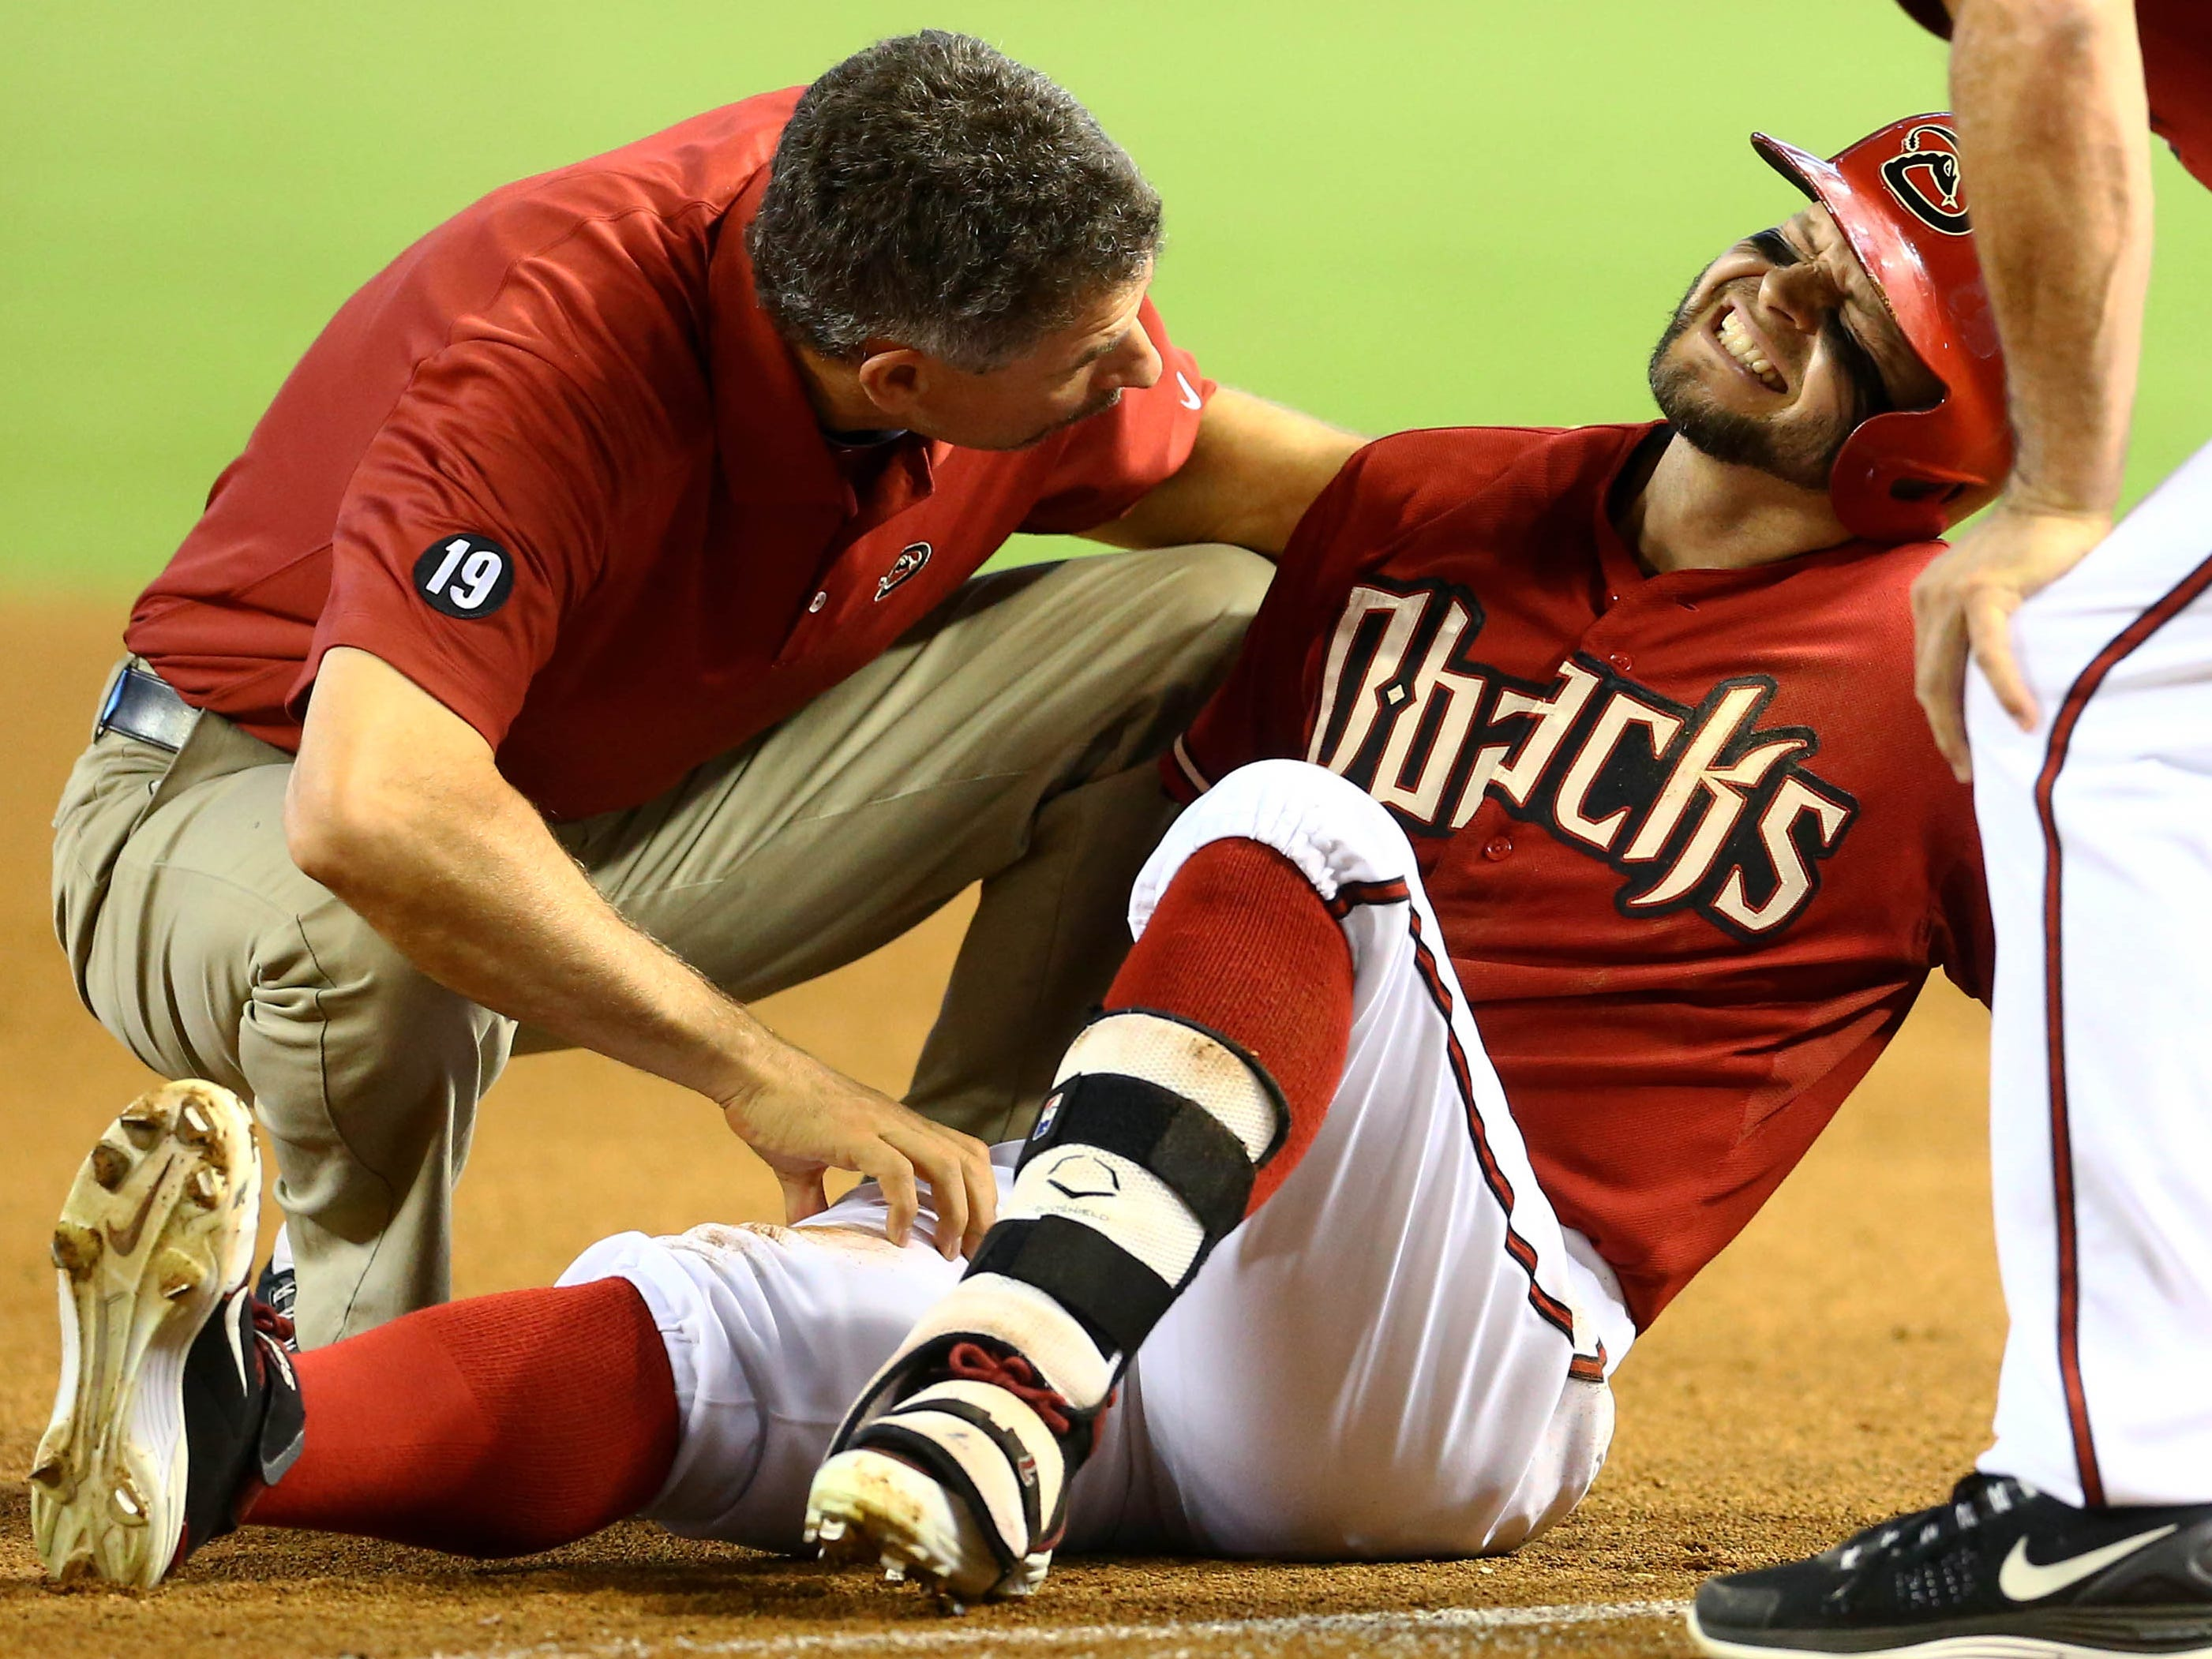 Aug. 12: Arizona Diamondbacks outfielder Cody Ross is on the 60-day disabled list with a fractured right hip.